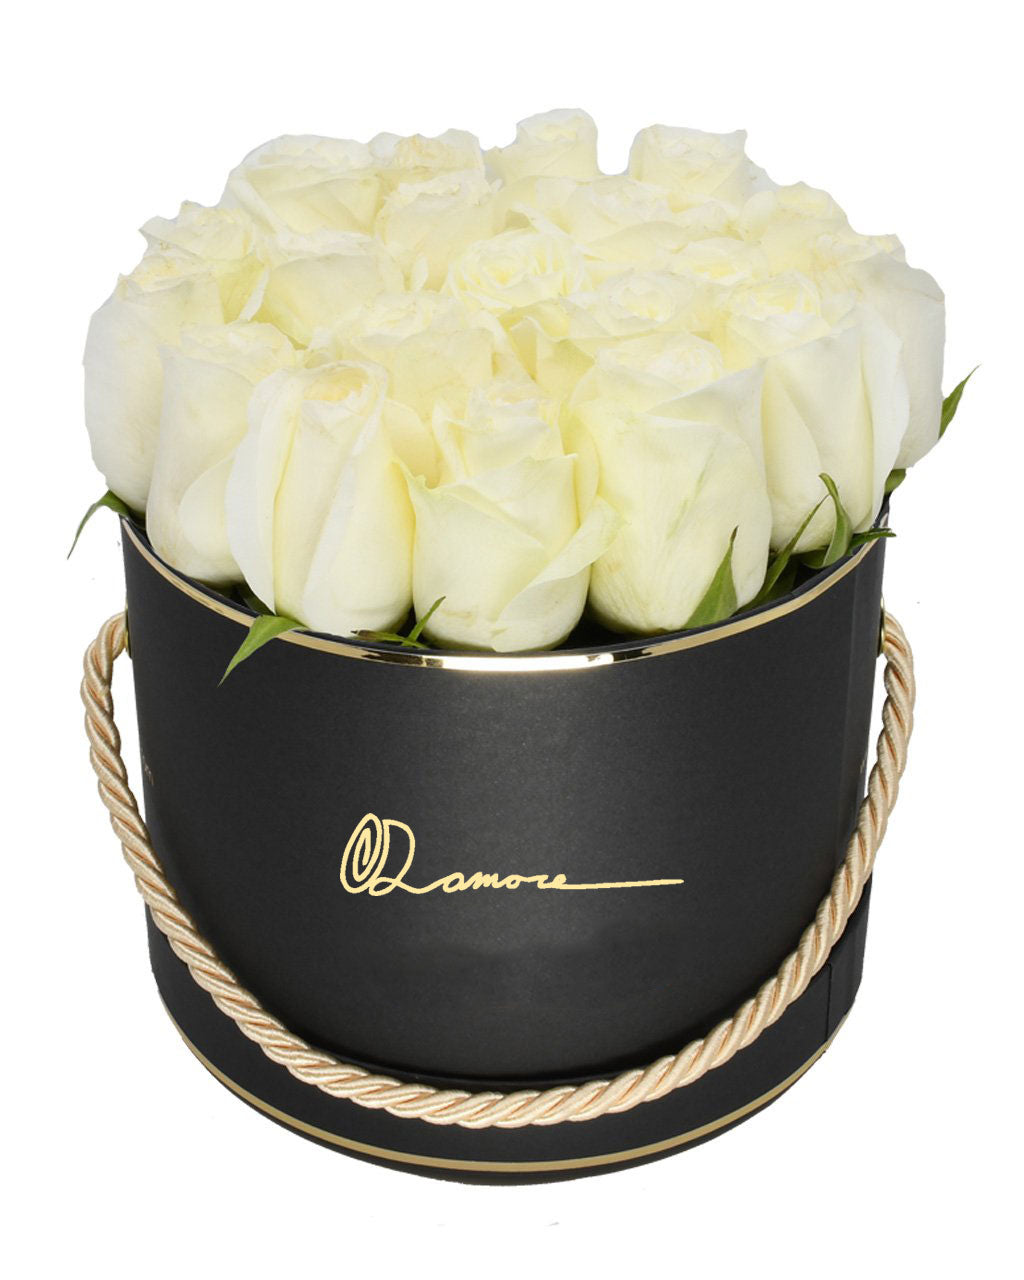 BASKET OF LOVE - Fiori d'amore official